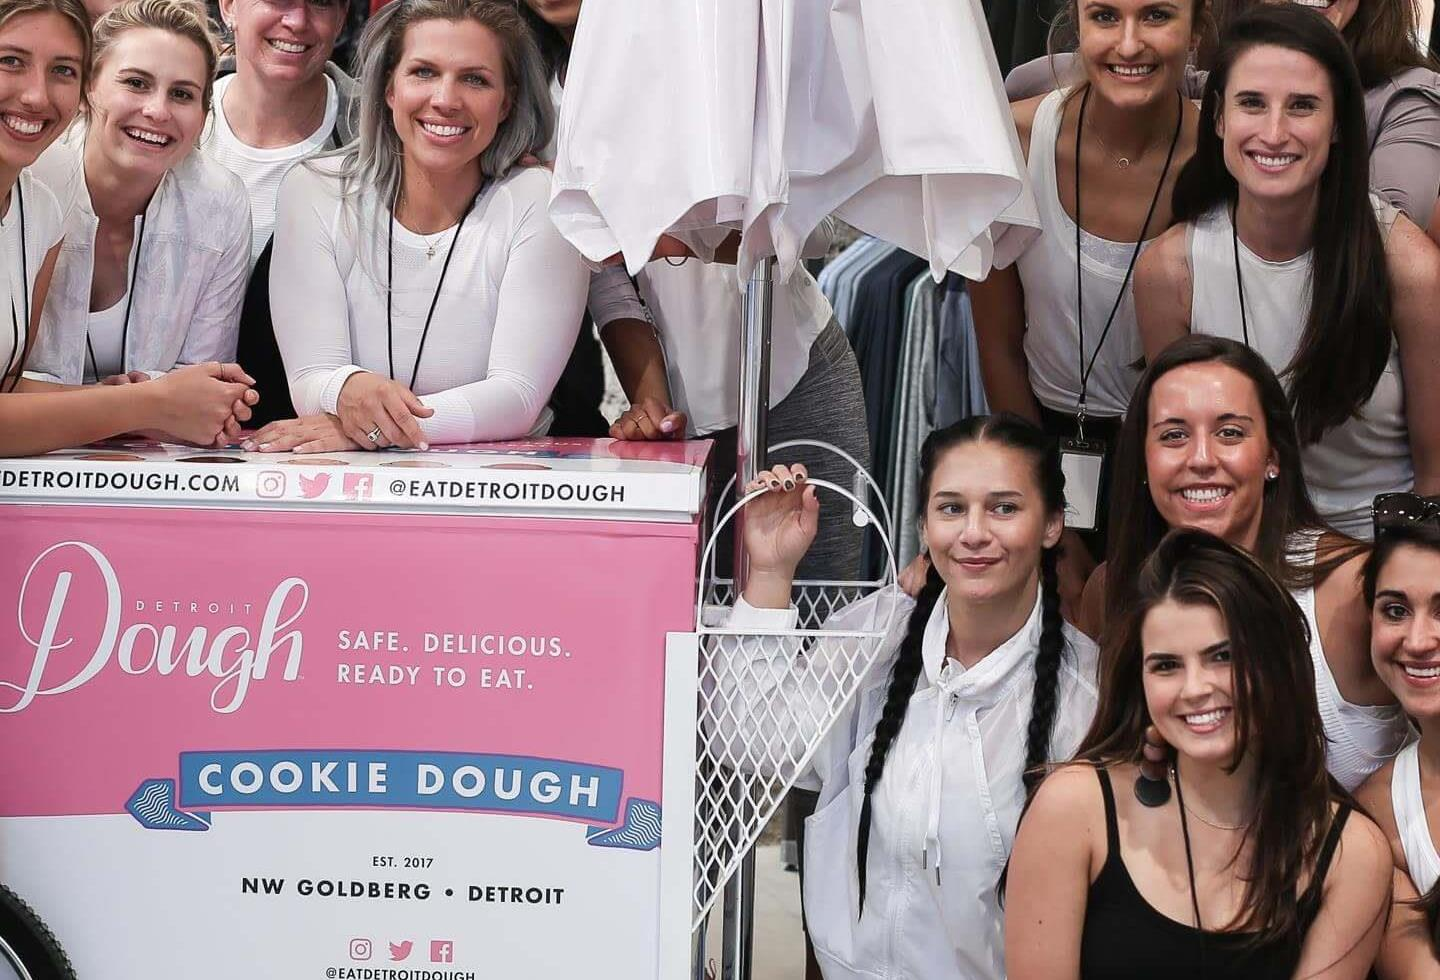 How a cookie dough company aims to help revitalize NW Goldberg